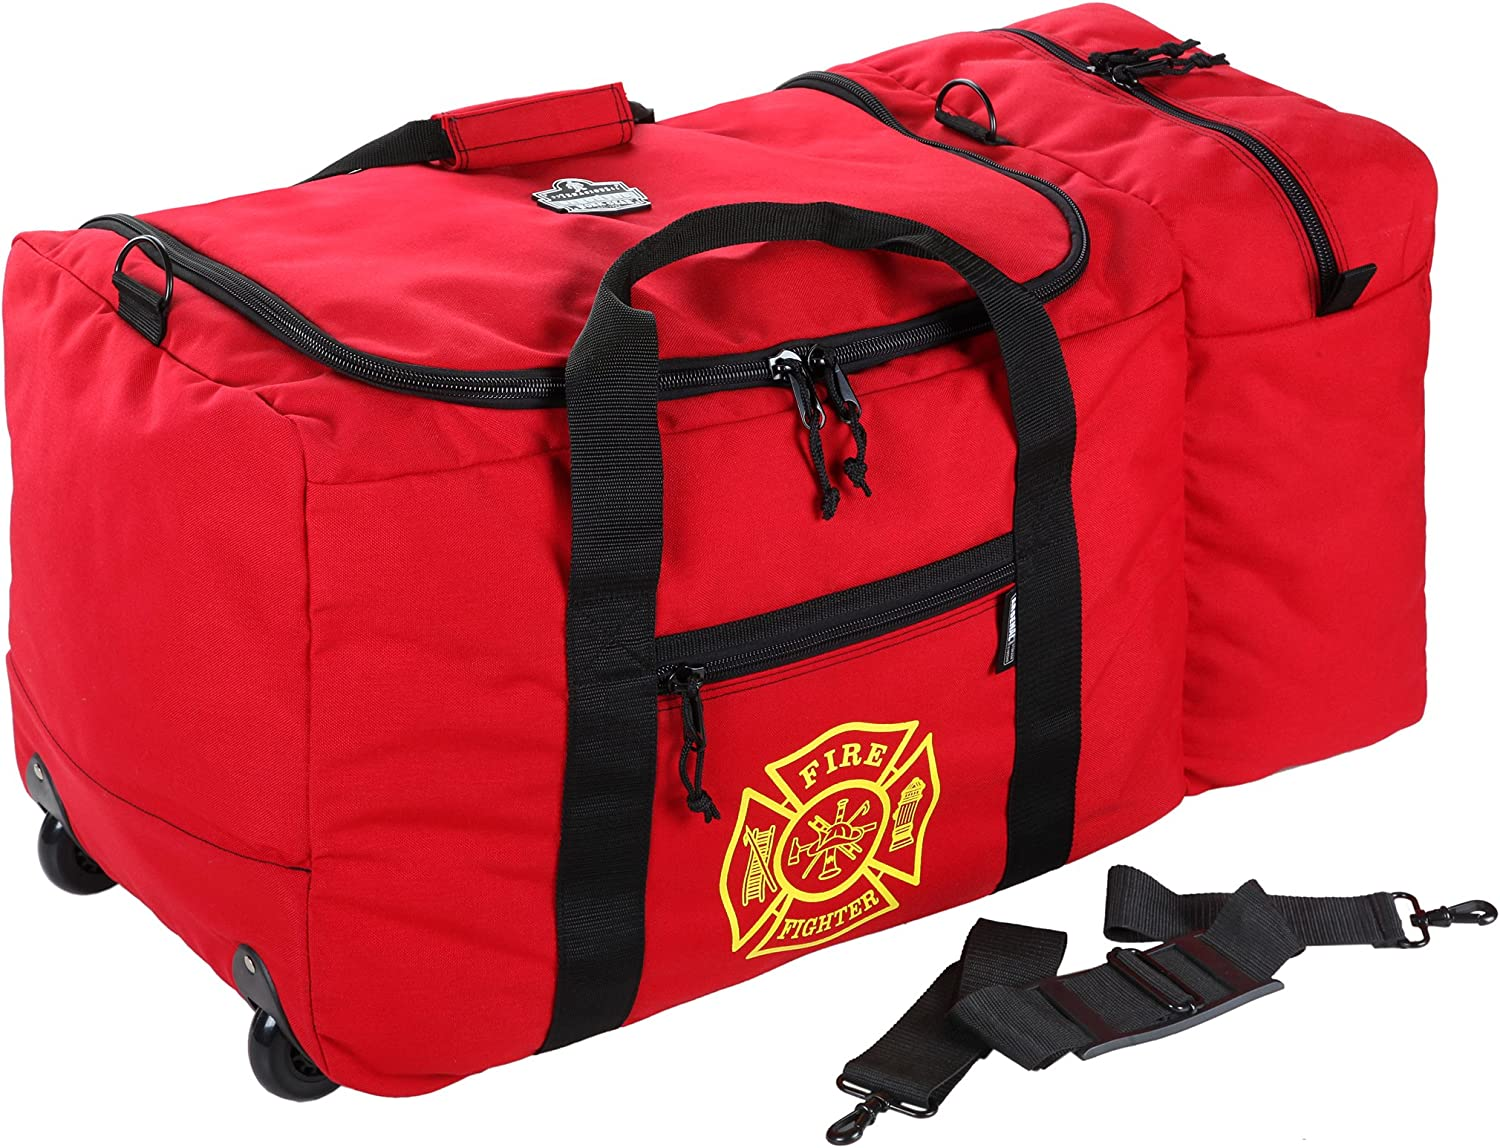 B00075M6HI Ergodyne Arsenal 5005W Large Nylon Rolling Firefighter Rescue Turnout Fire Gear Bag with Shoulder Strap and Helmet Pocket 916qf5YcV8L